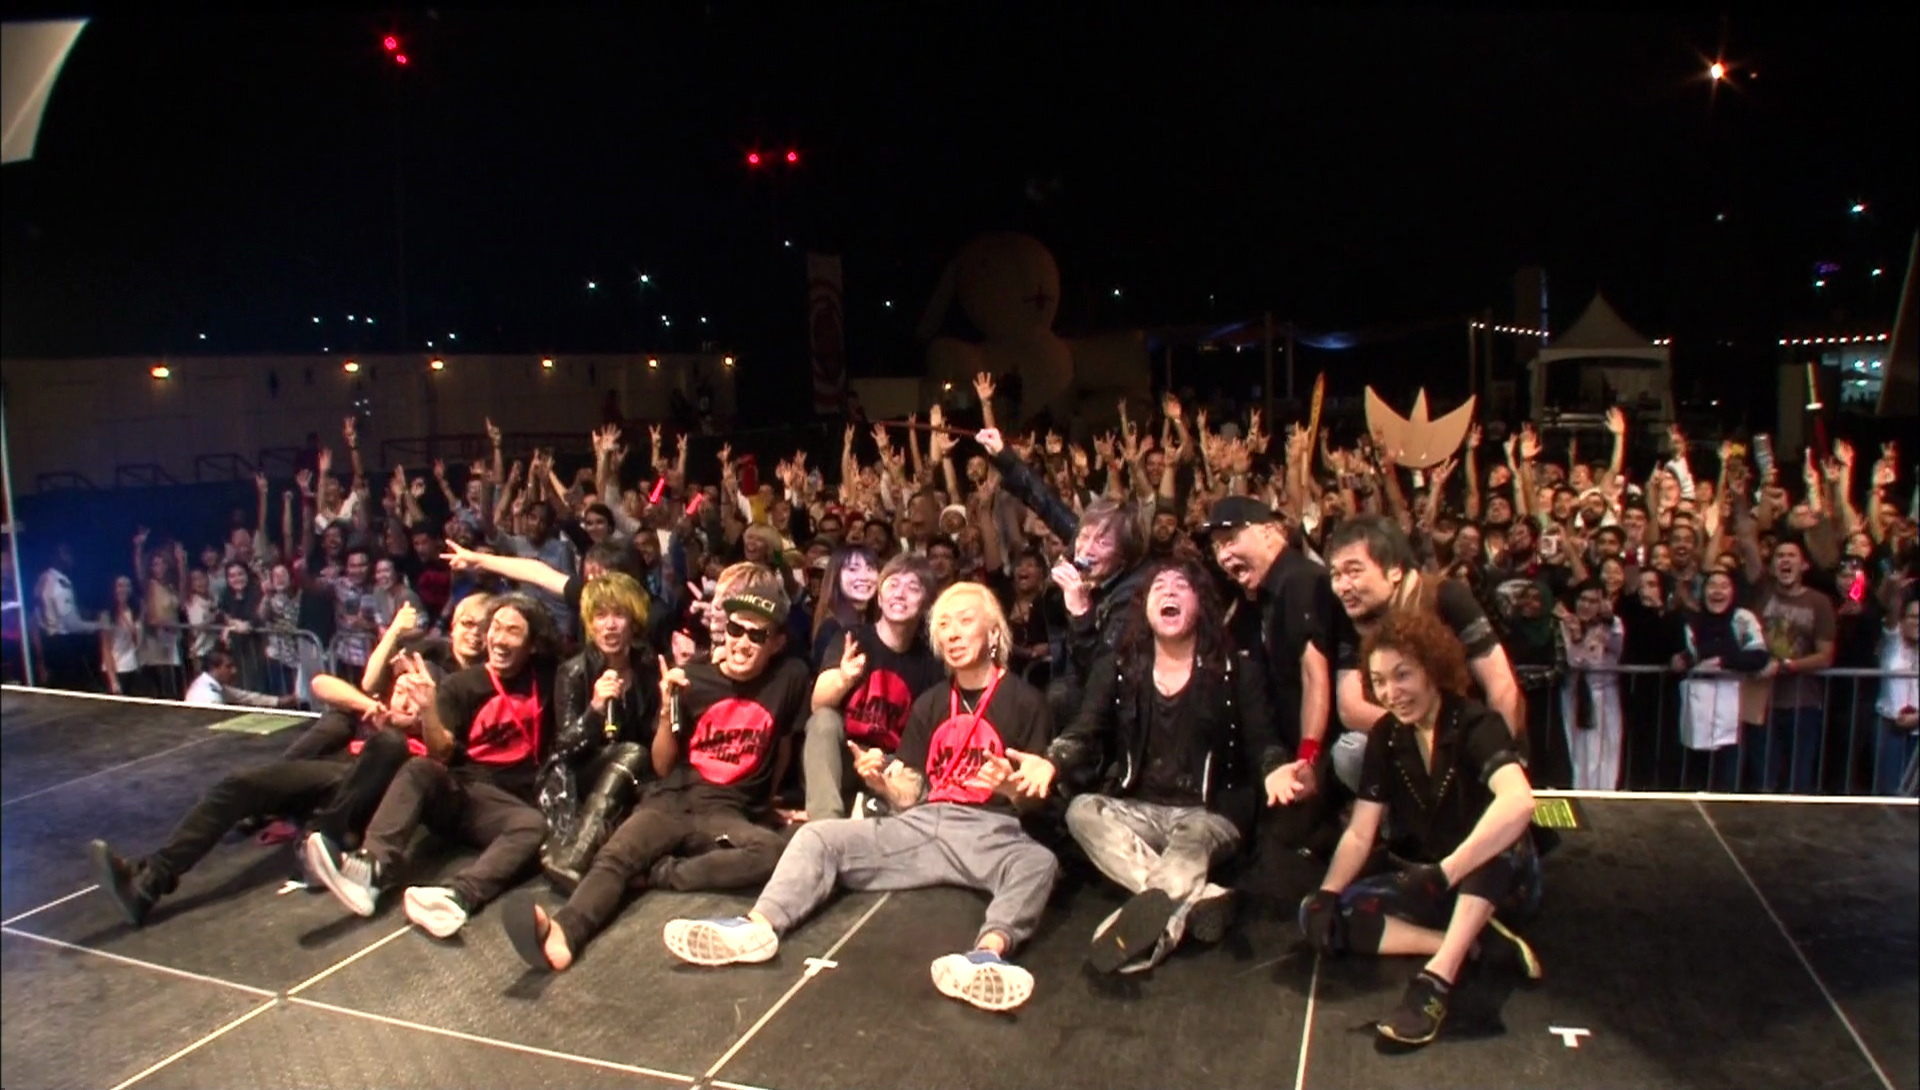 『JAM Project First Steps into the Middle East ANIME SONGS unite the world』より (C) 2016 MTDD・テレビマンユニオン